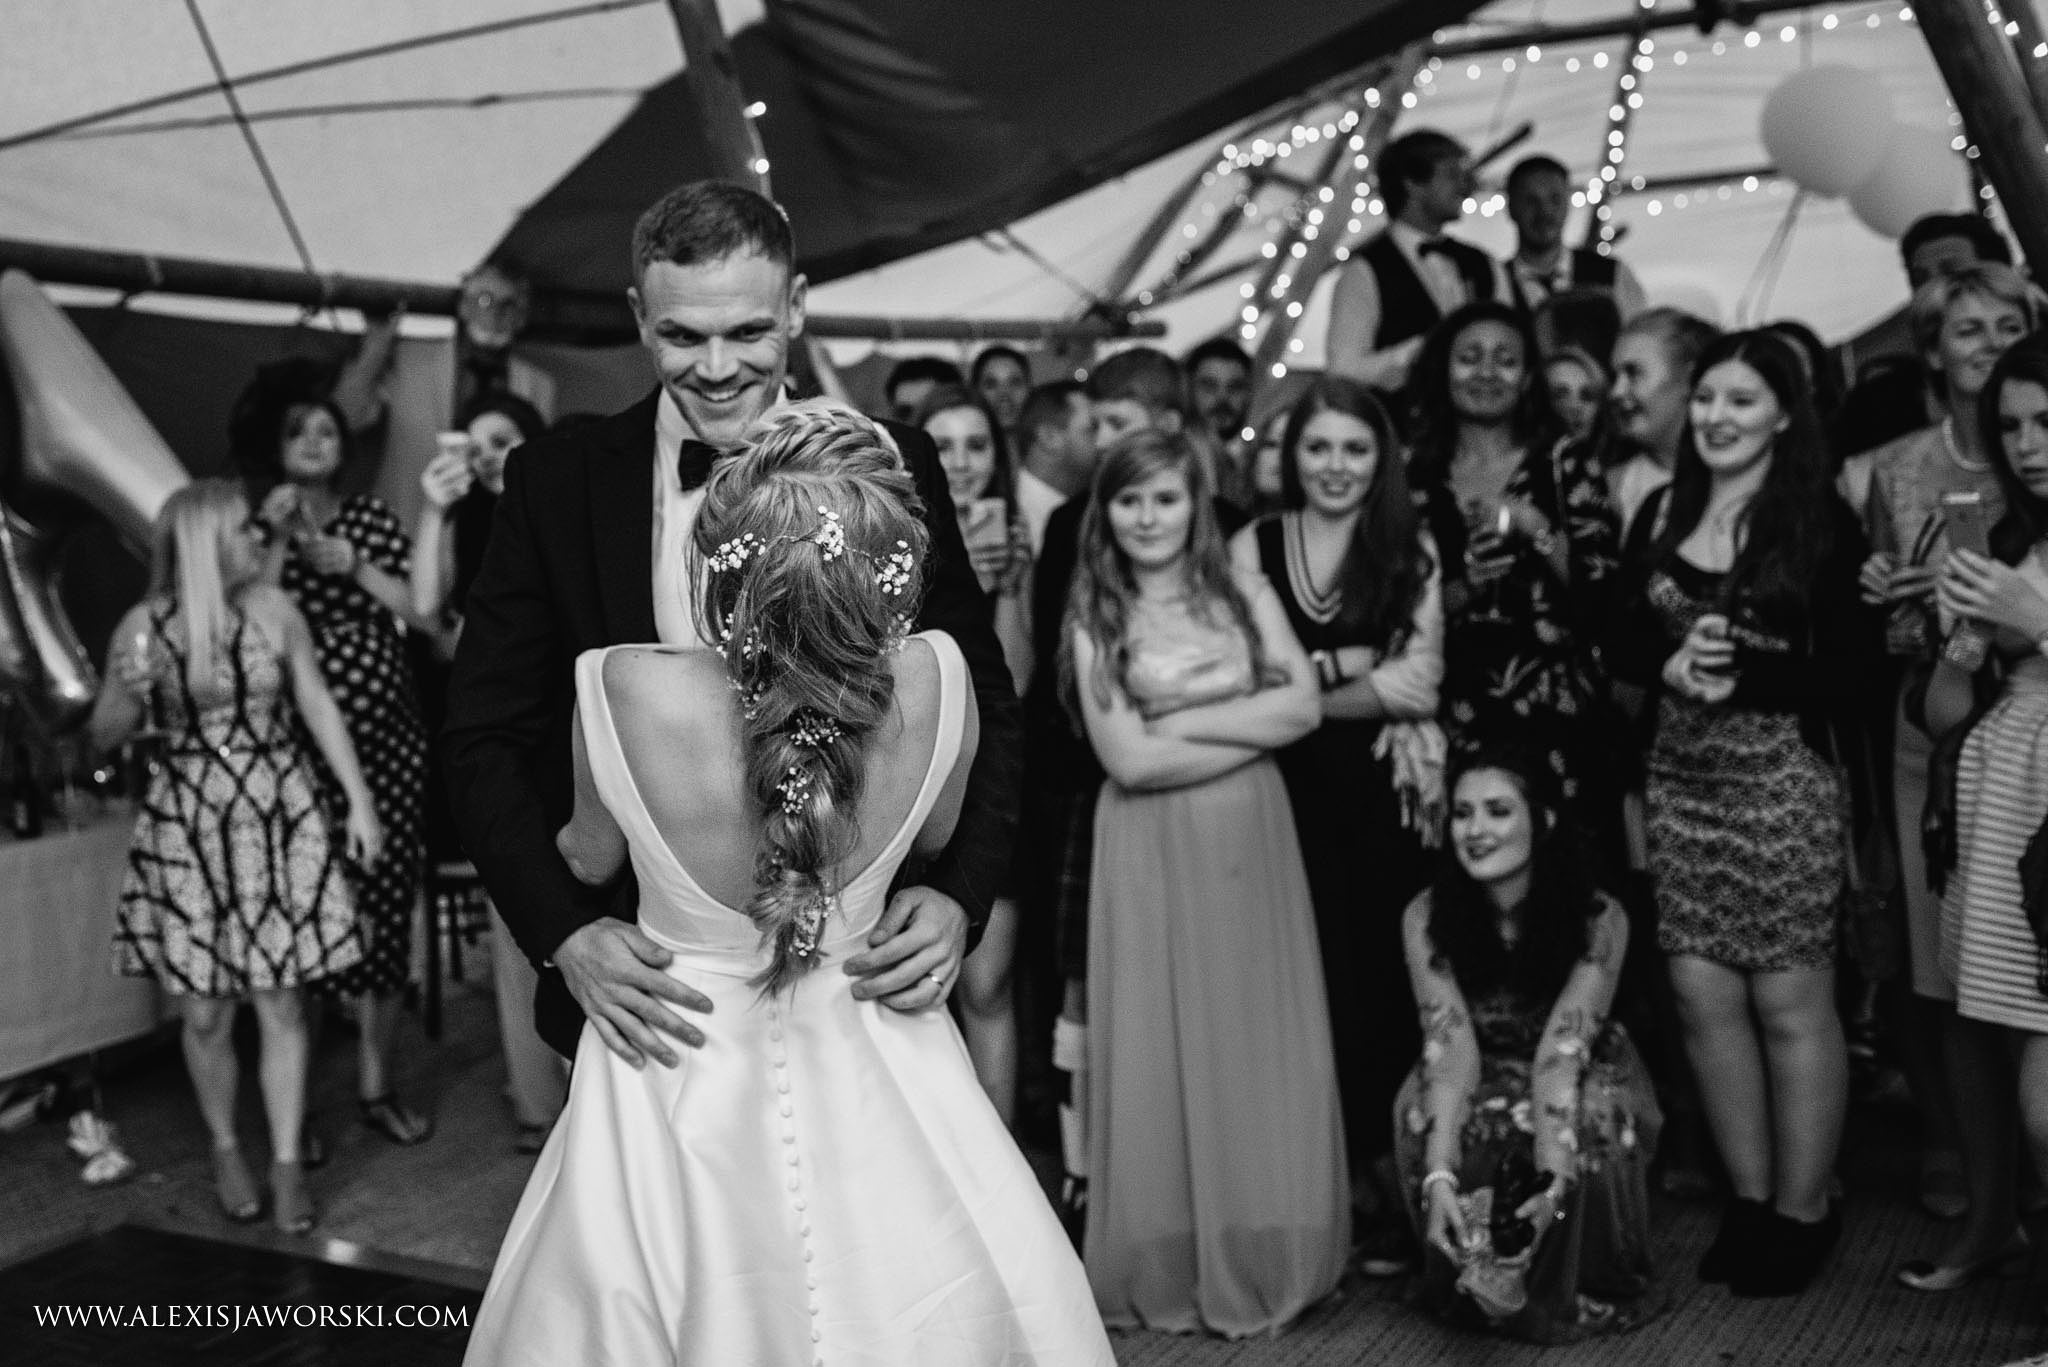 brid eand groom dancing with guests looking on